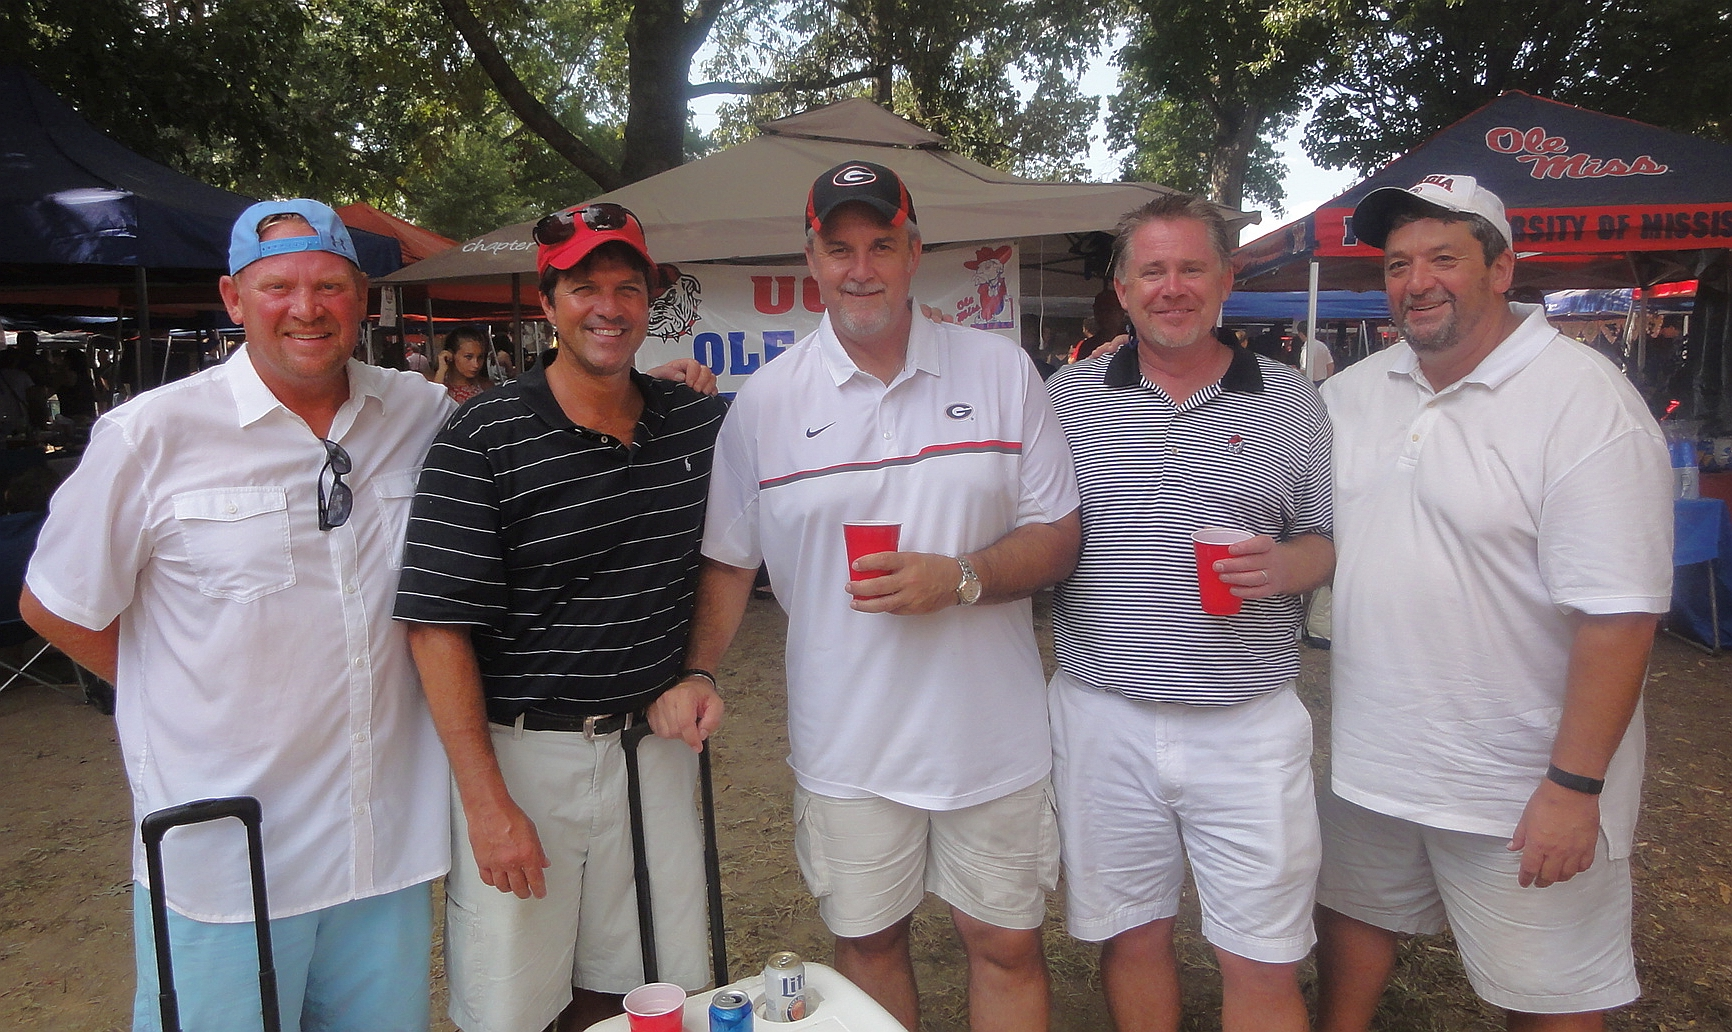 ole miss fan photos bulldawg illustrated jim throw glenn rosdeutscher mike maltby robert es and jeff maltby